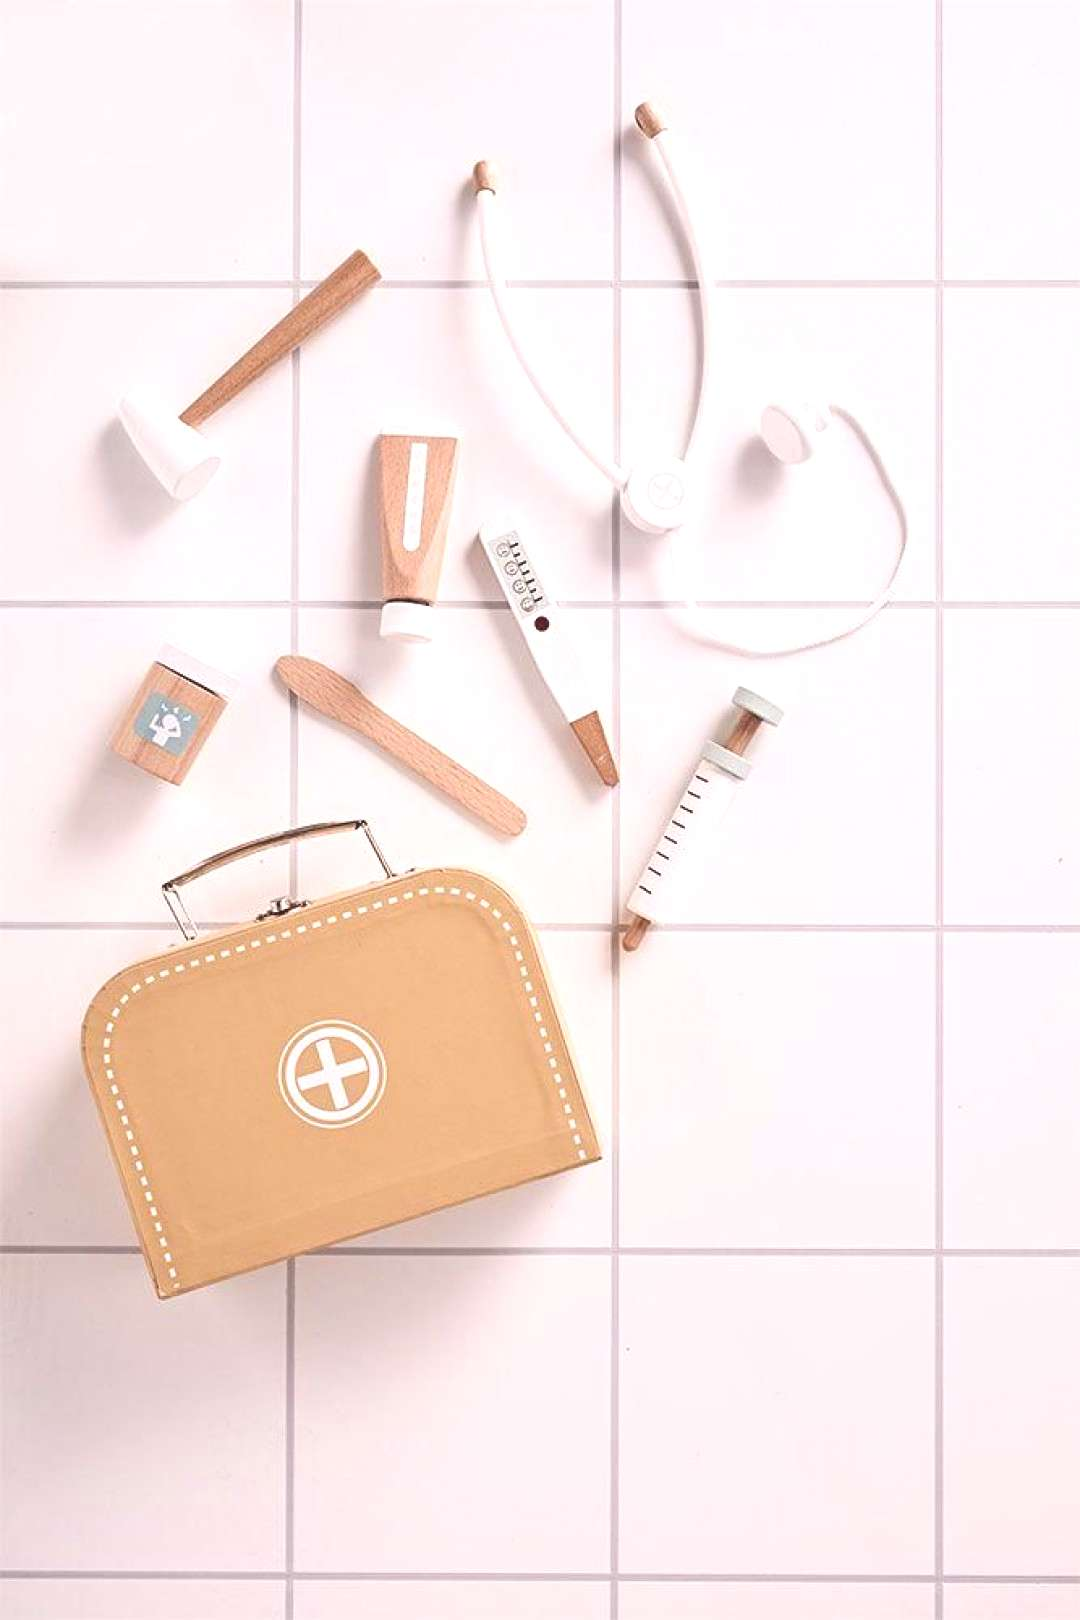 How fun is this beautifully presented wooden doctors sets from Scandinavian brand, Kid'